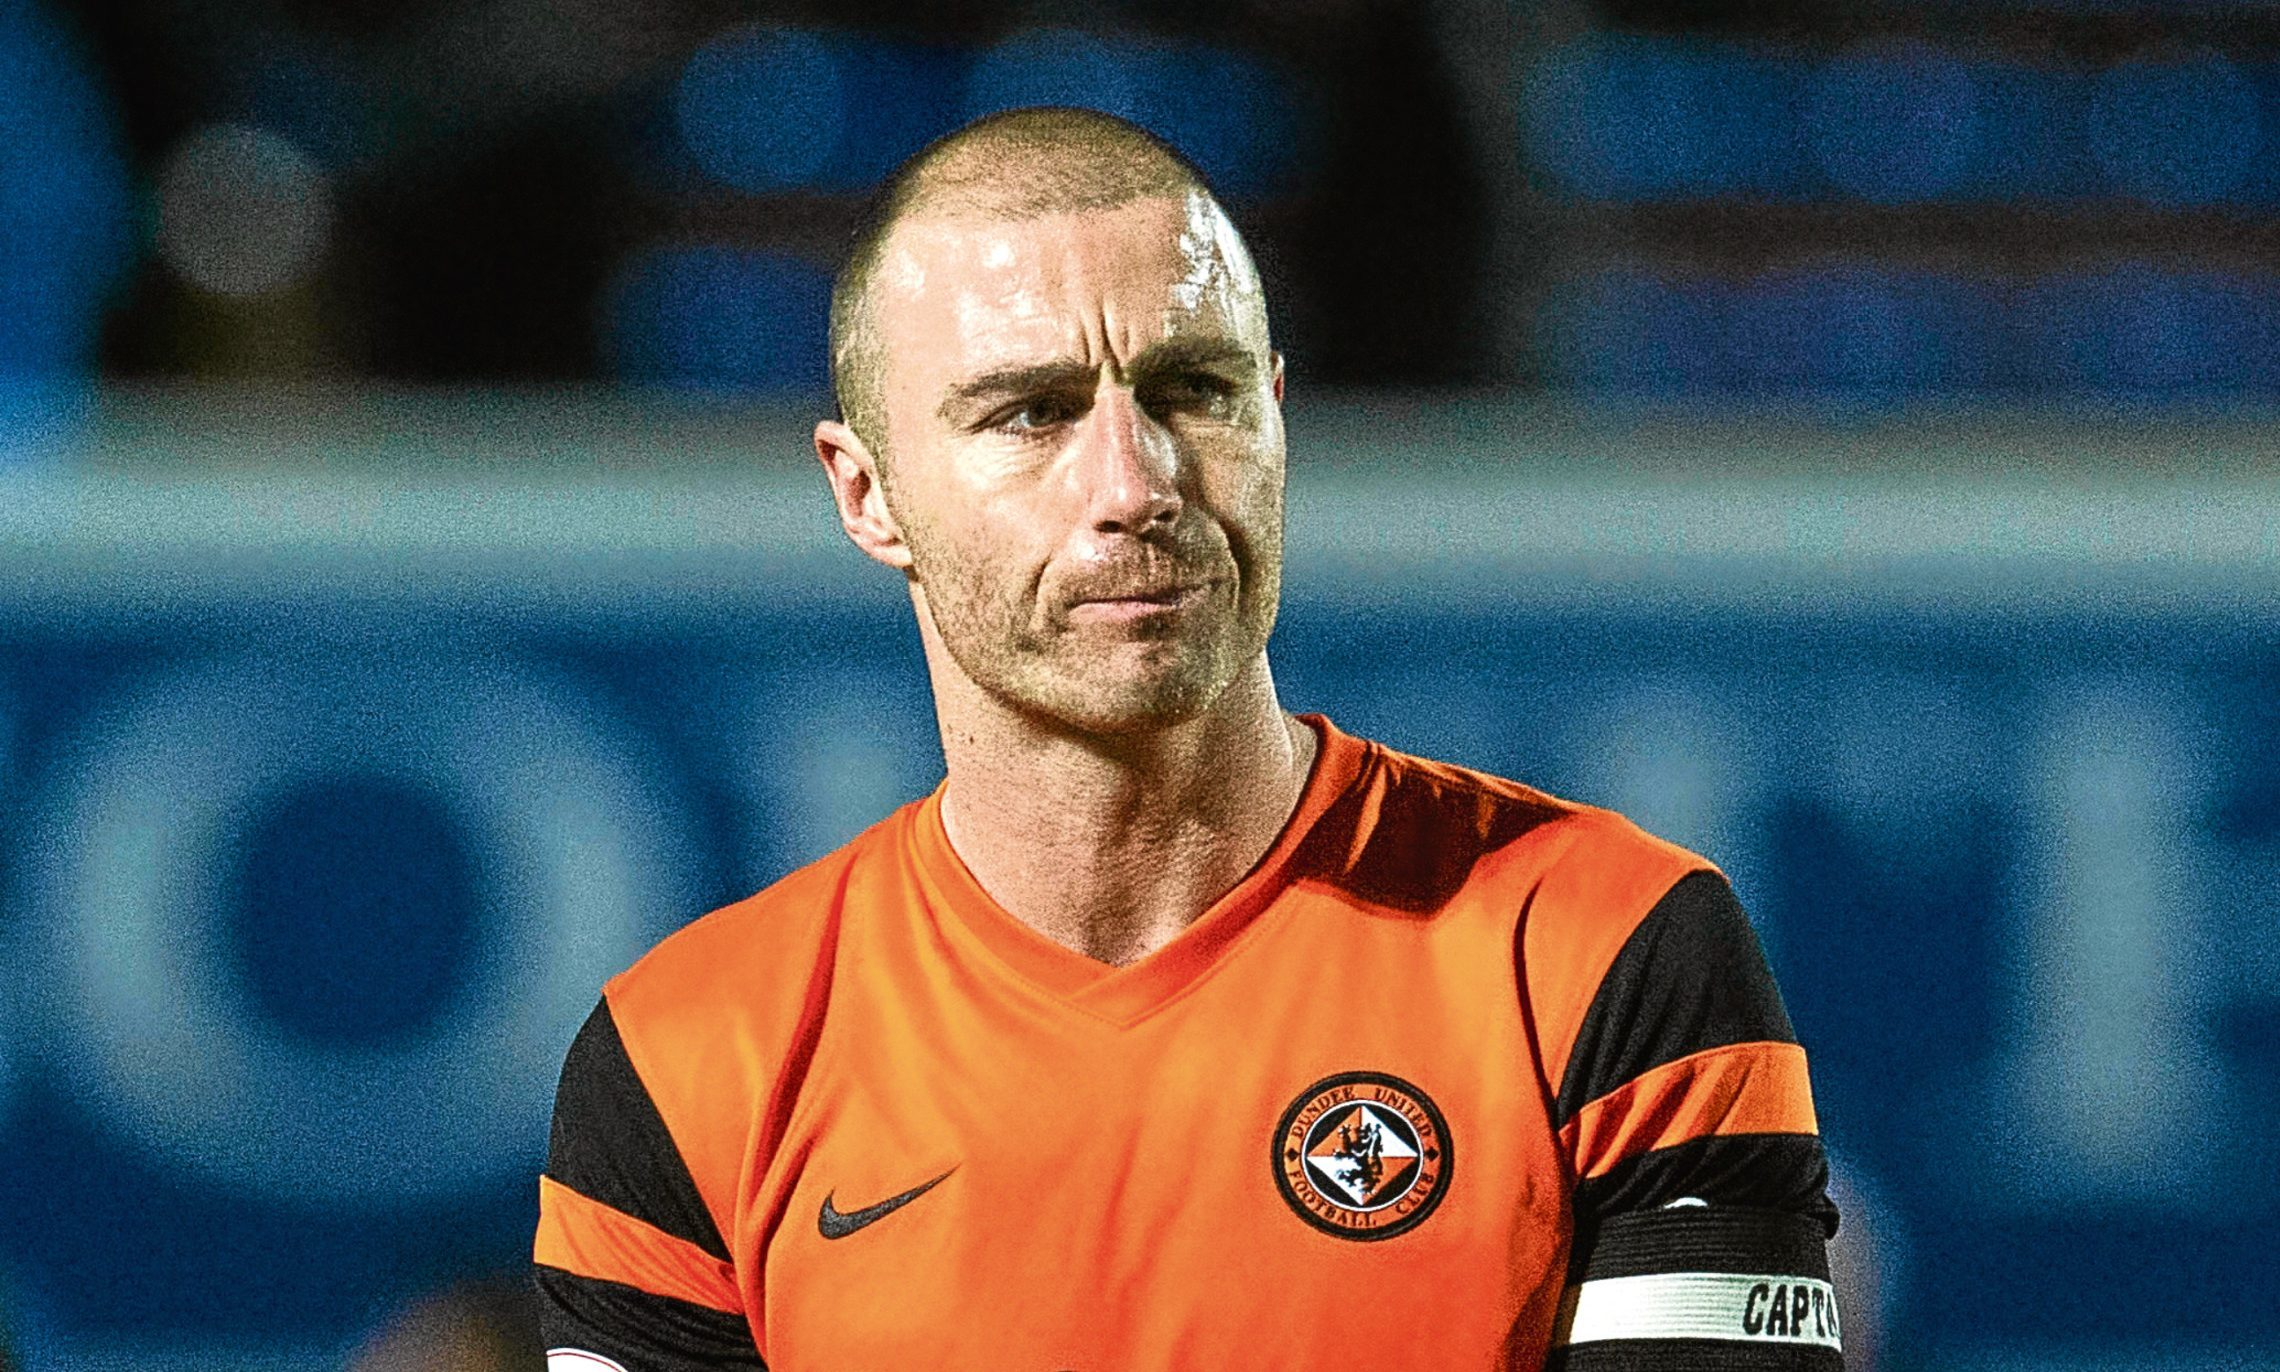 Dundee United skipper Sean Dillon is battling his way back to full fitness.